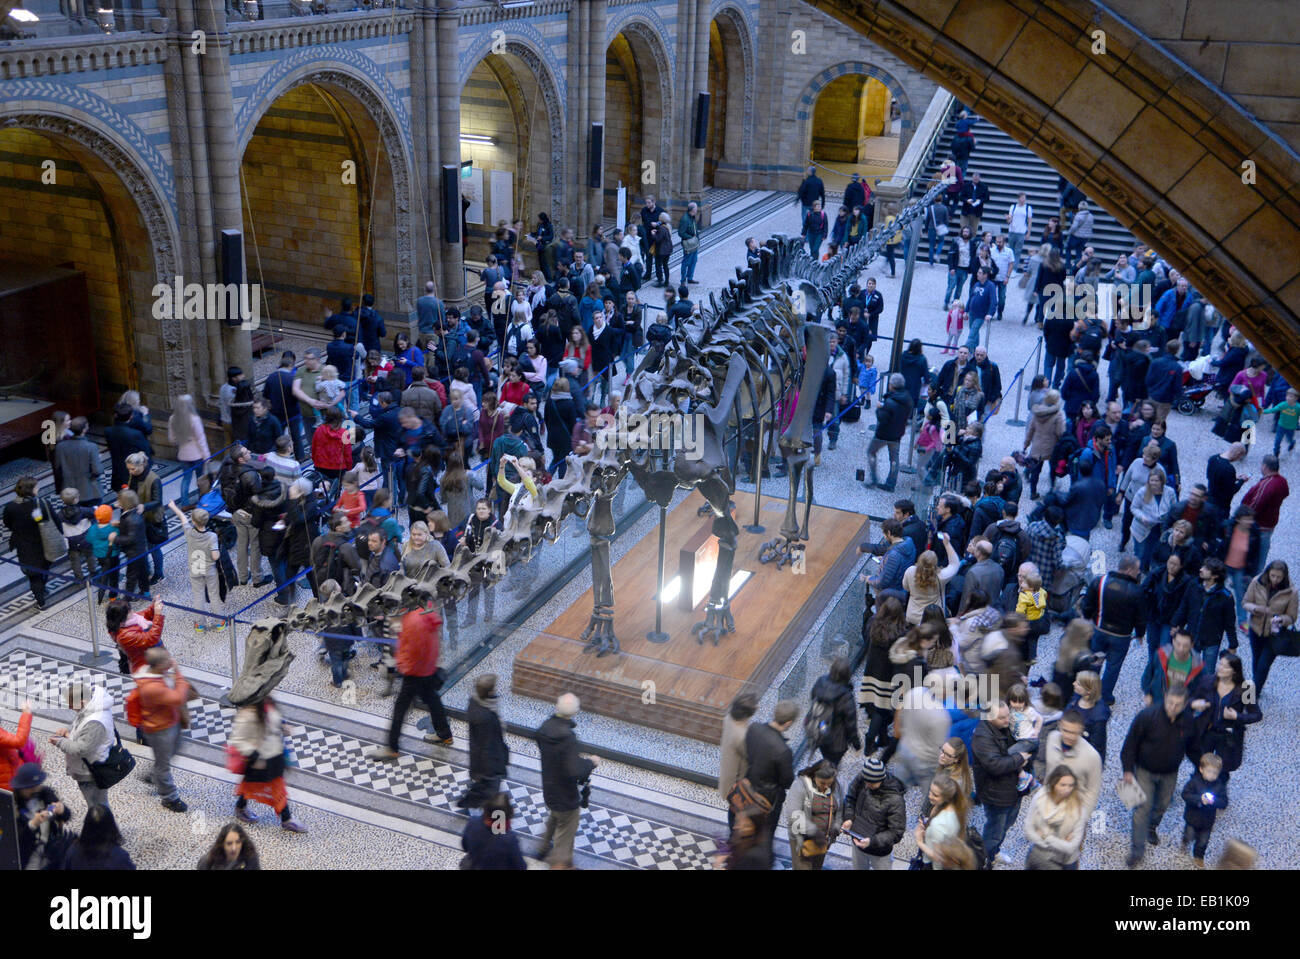 Visitors crowd around the Diplodocus skeleton in entrance hall of the Natural History Museum, London - Stock Image